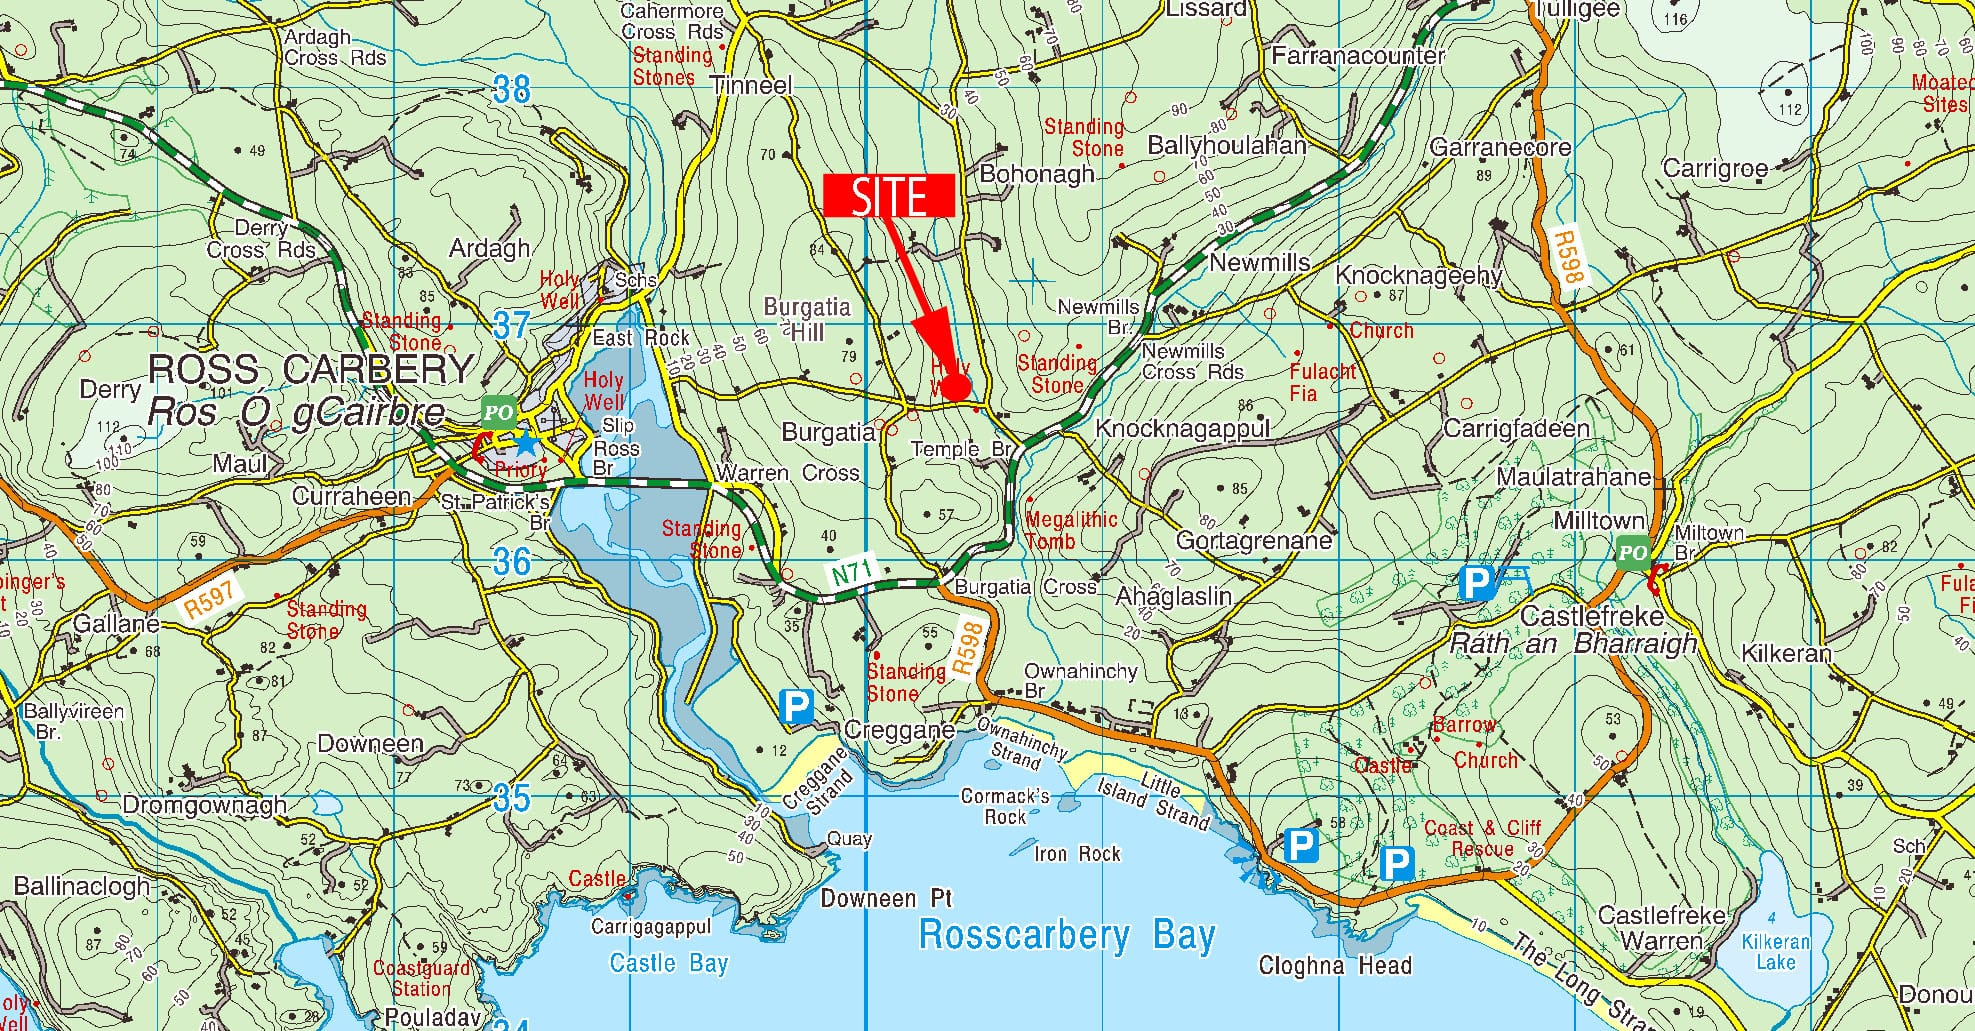 OS1202 Site Rosscarbery